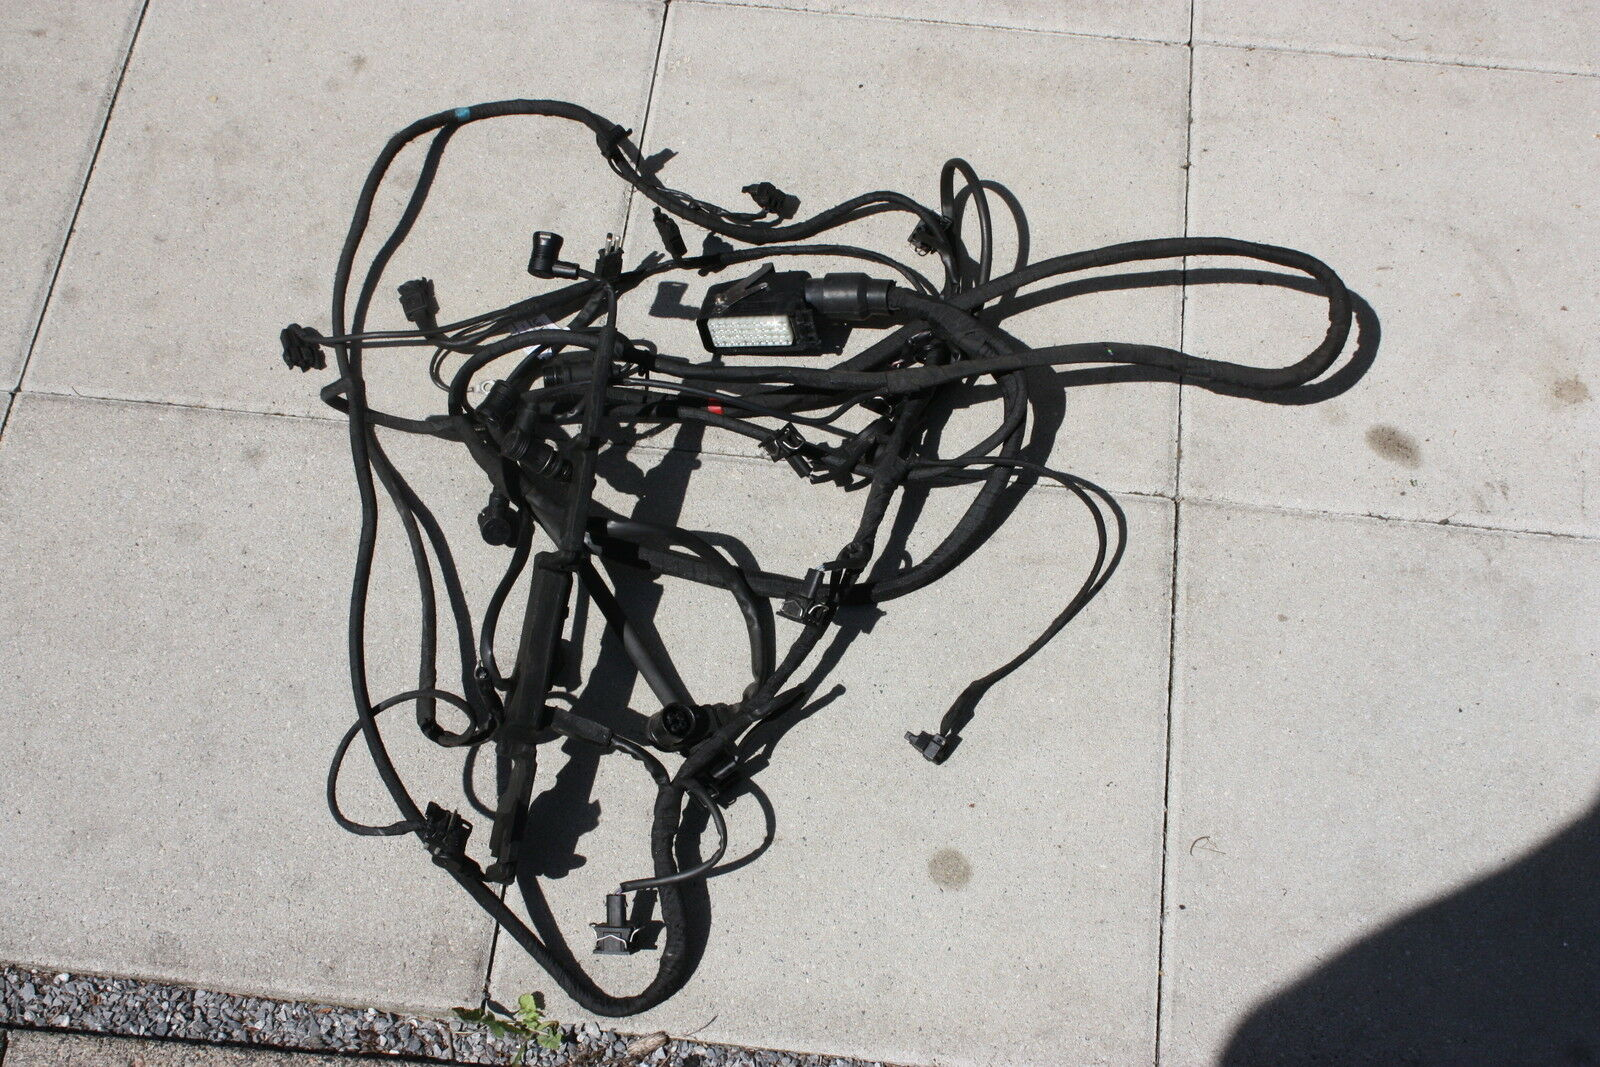 Mercedes Benz W124 E280 E320 Engine Wiring Harness M104 1244405232 1 Of See More